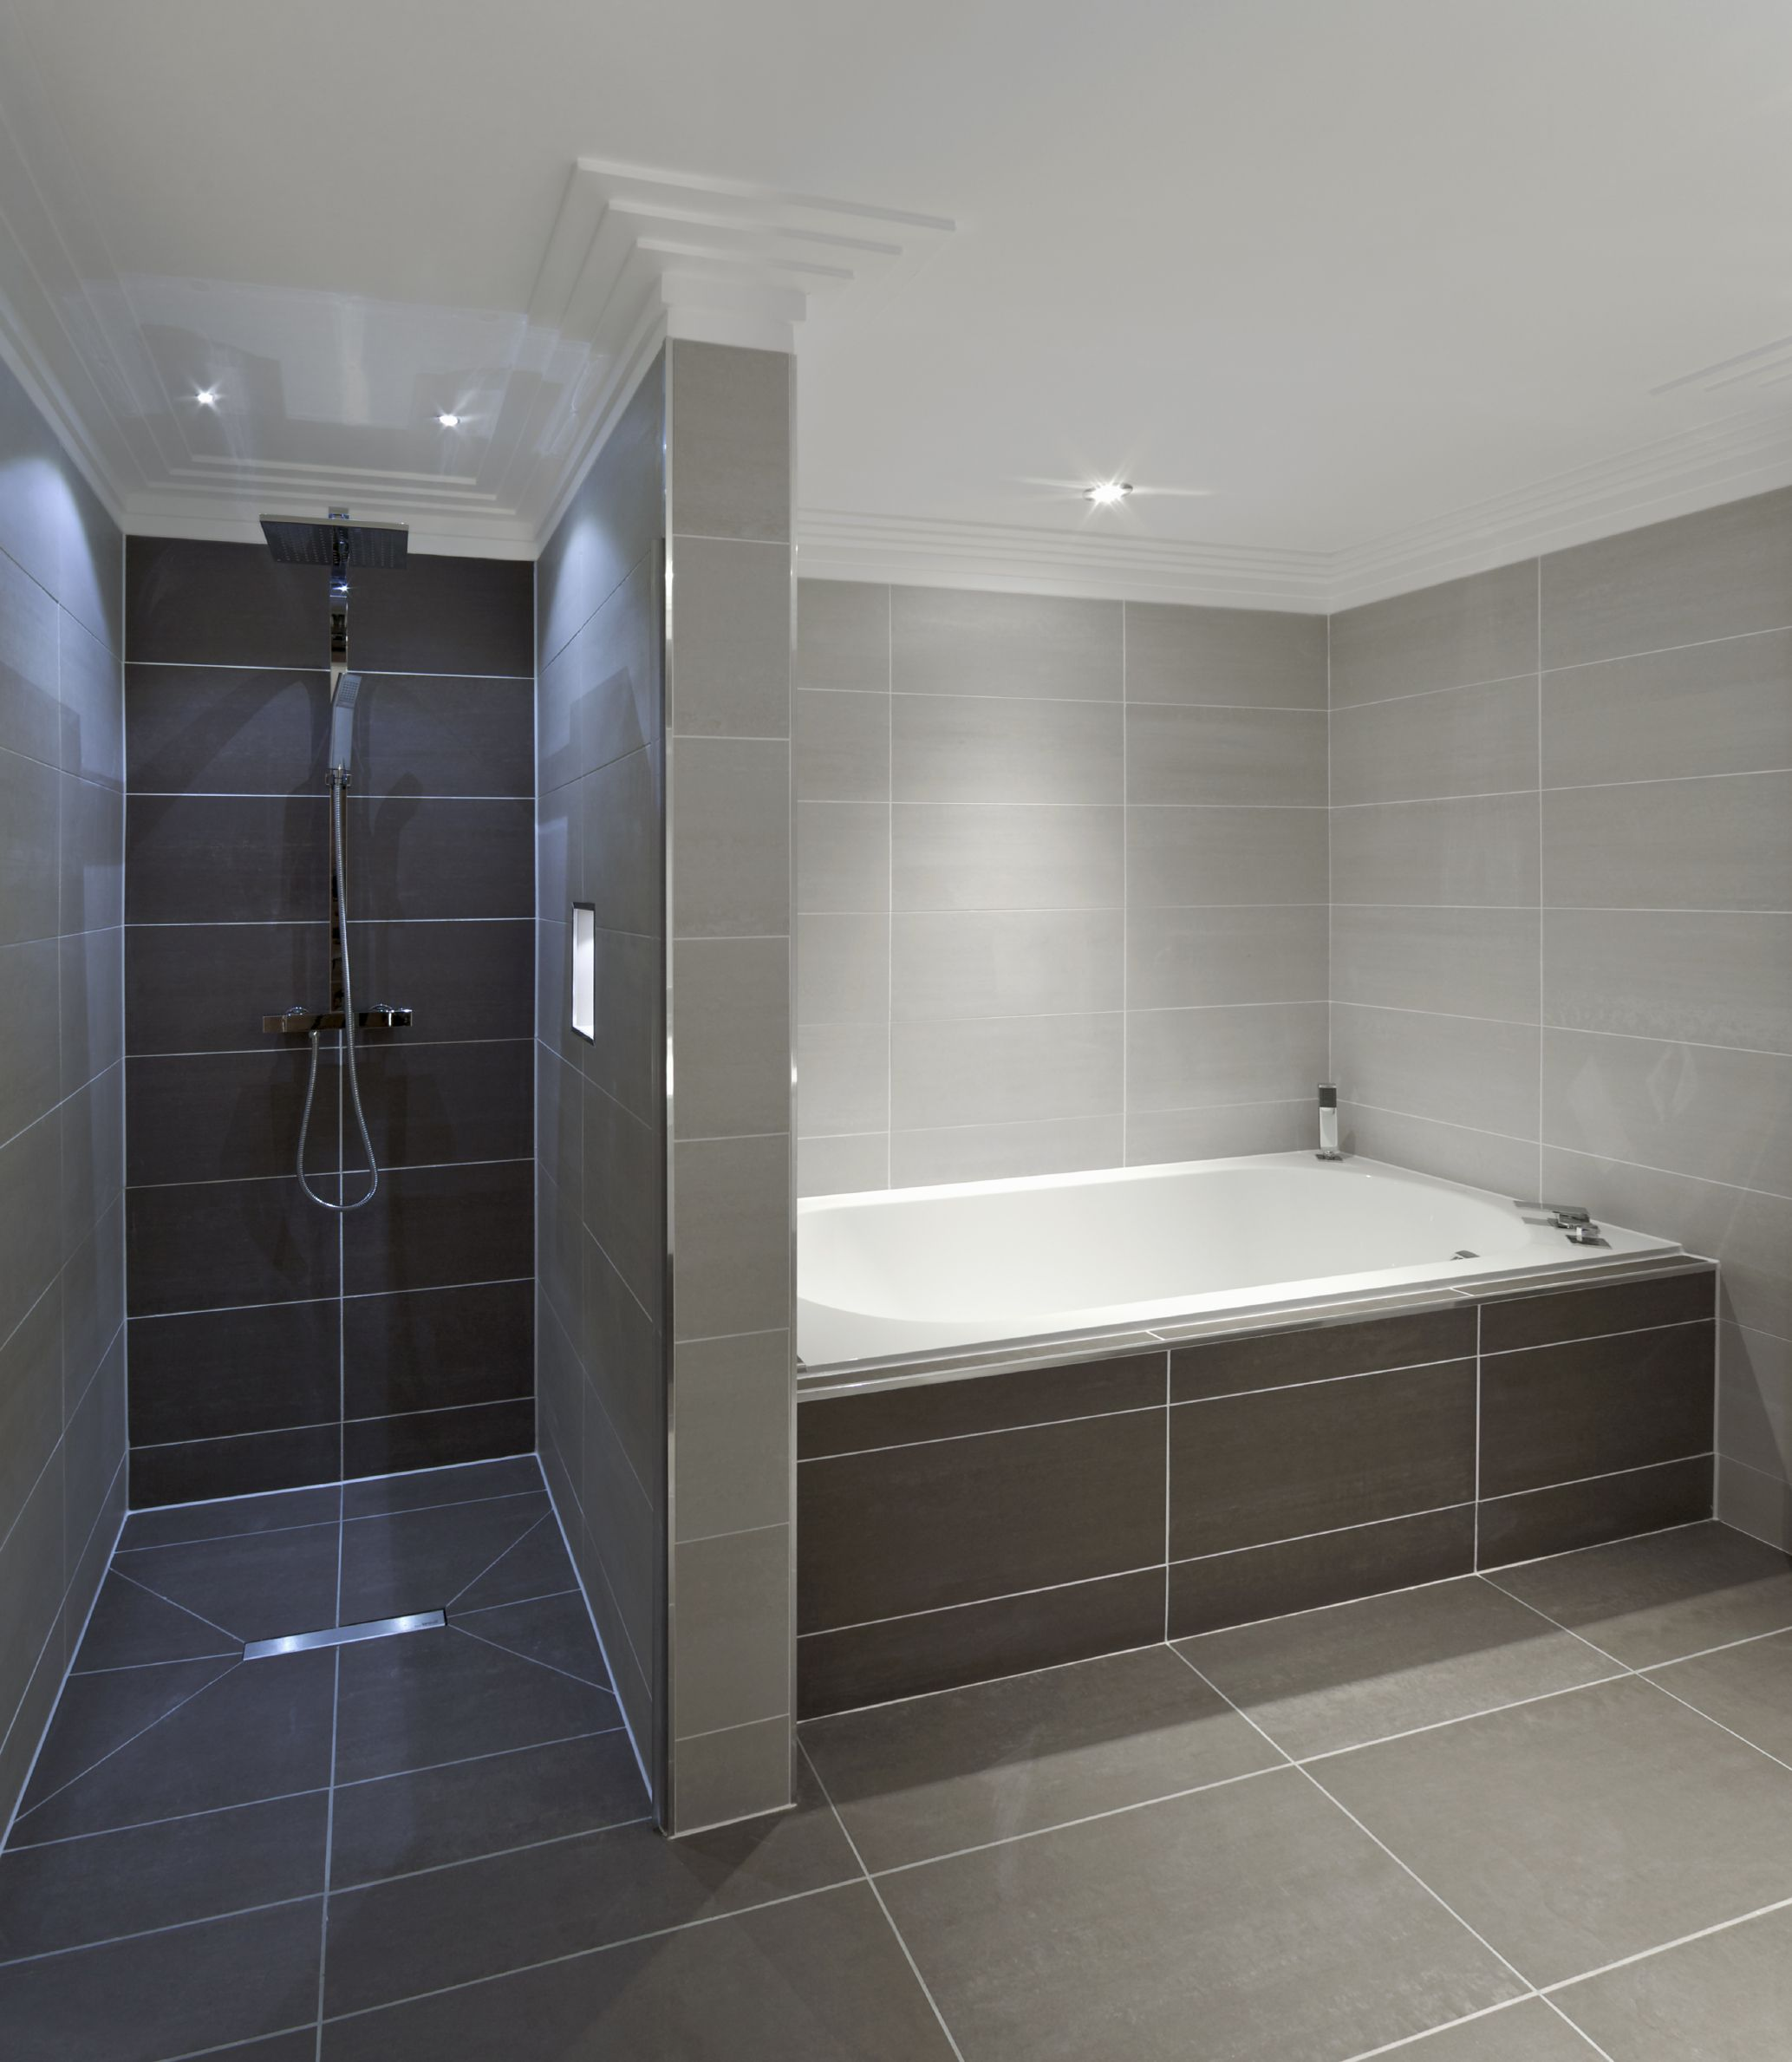 Soft Lighting And Dramatic Tile Blend Perfectly Http Www